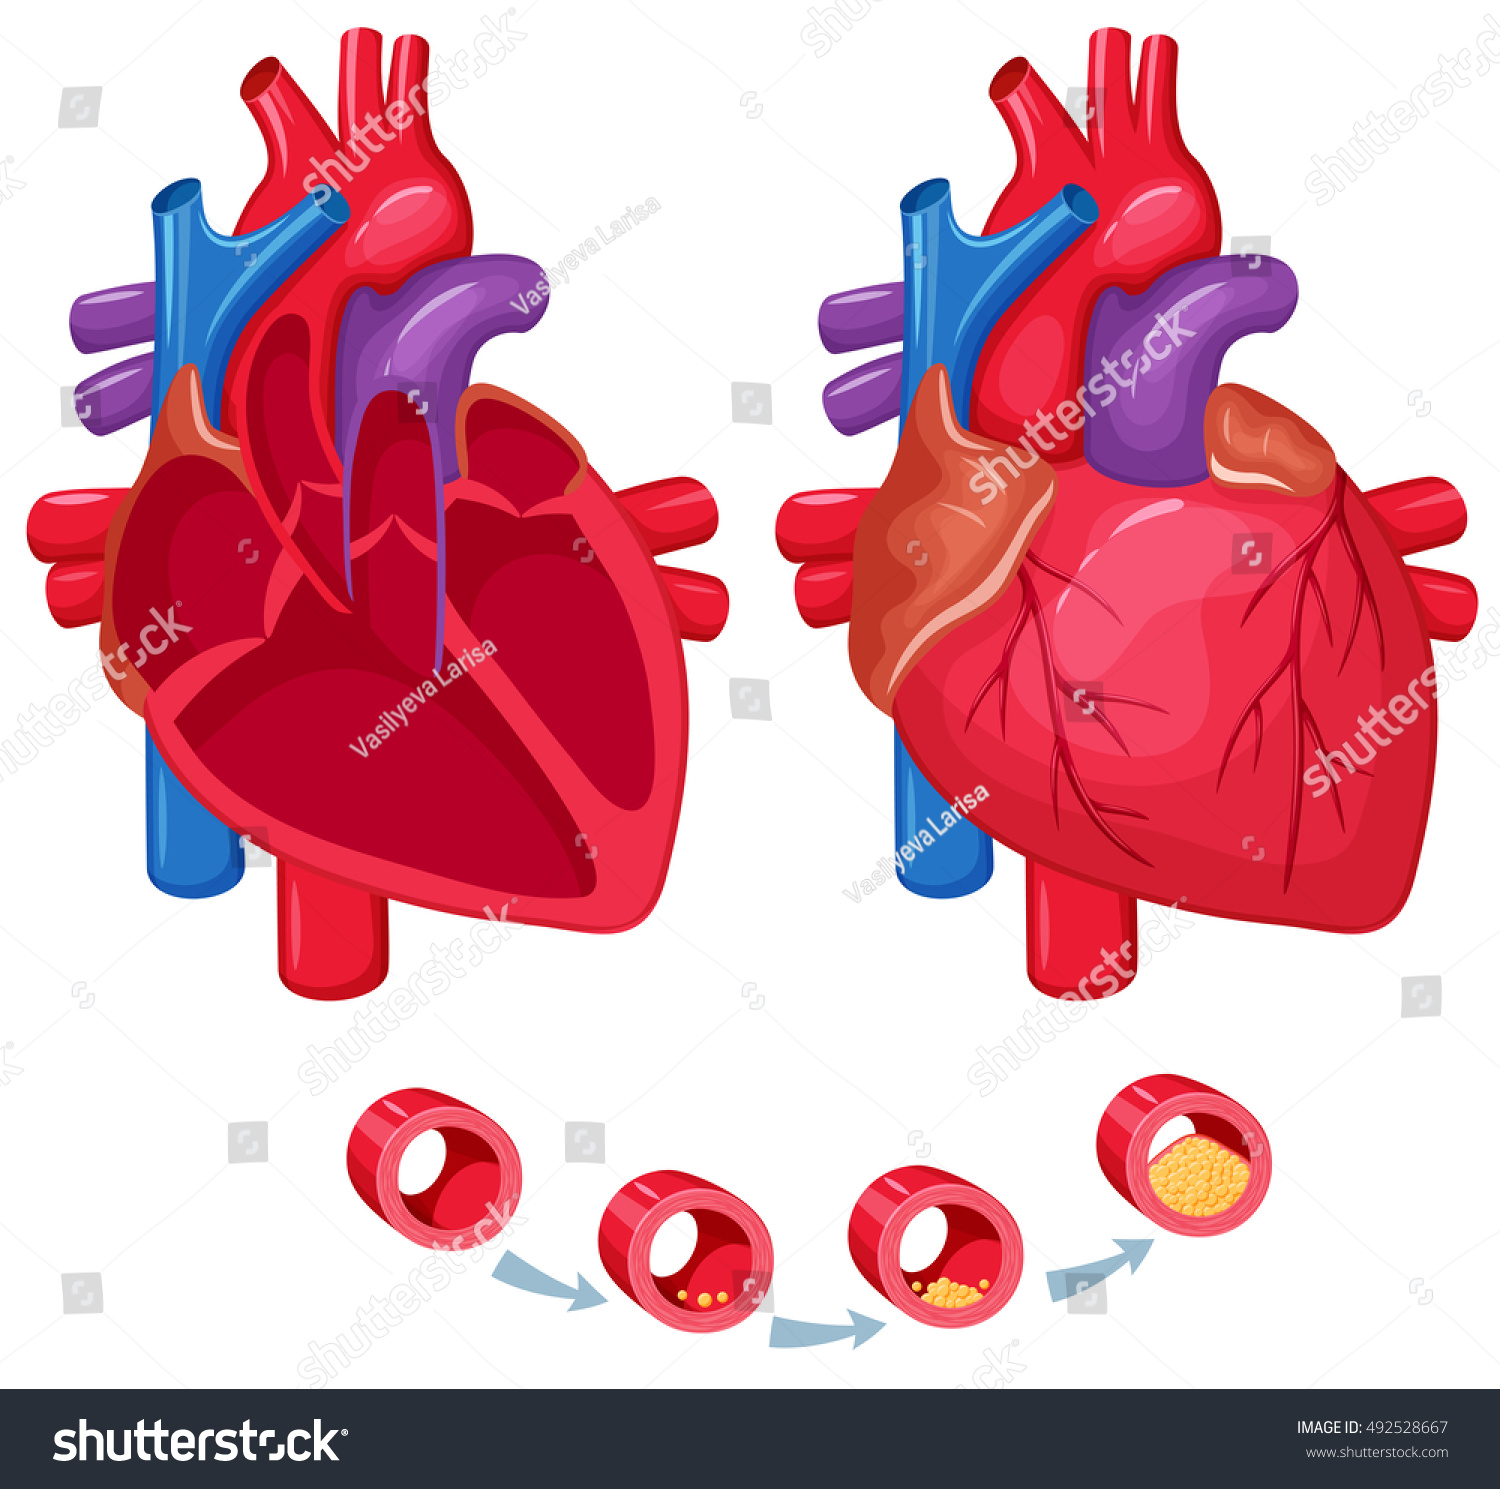 Human Heart Anatomy Medical Science Vector Stock Vector Hd Royalty